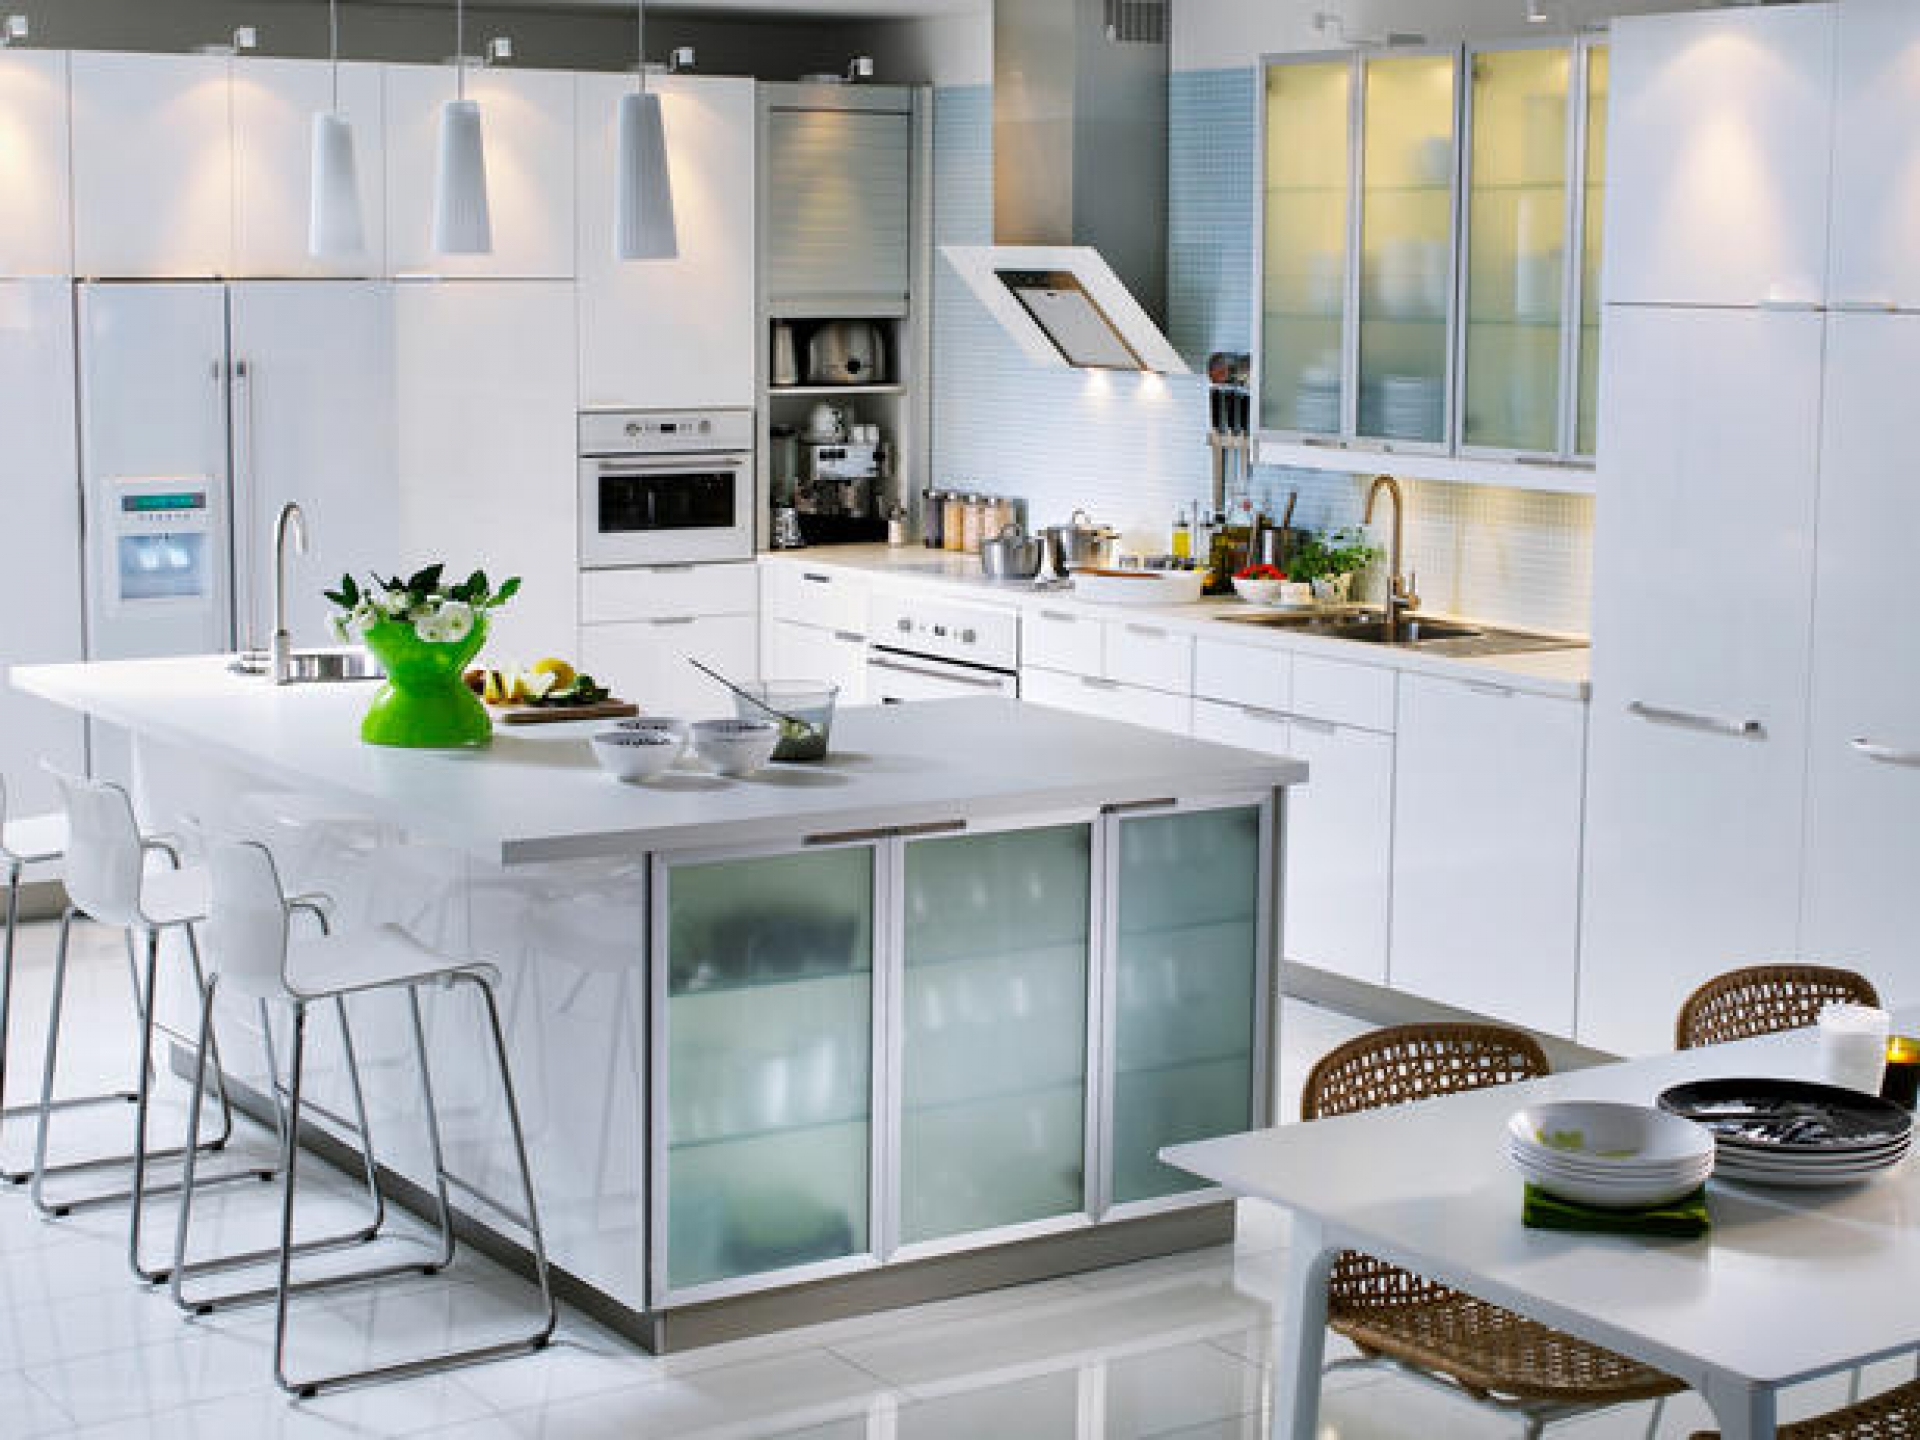 Attractive Kitchen Design Application From Ikea Online Image 1 Of 10